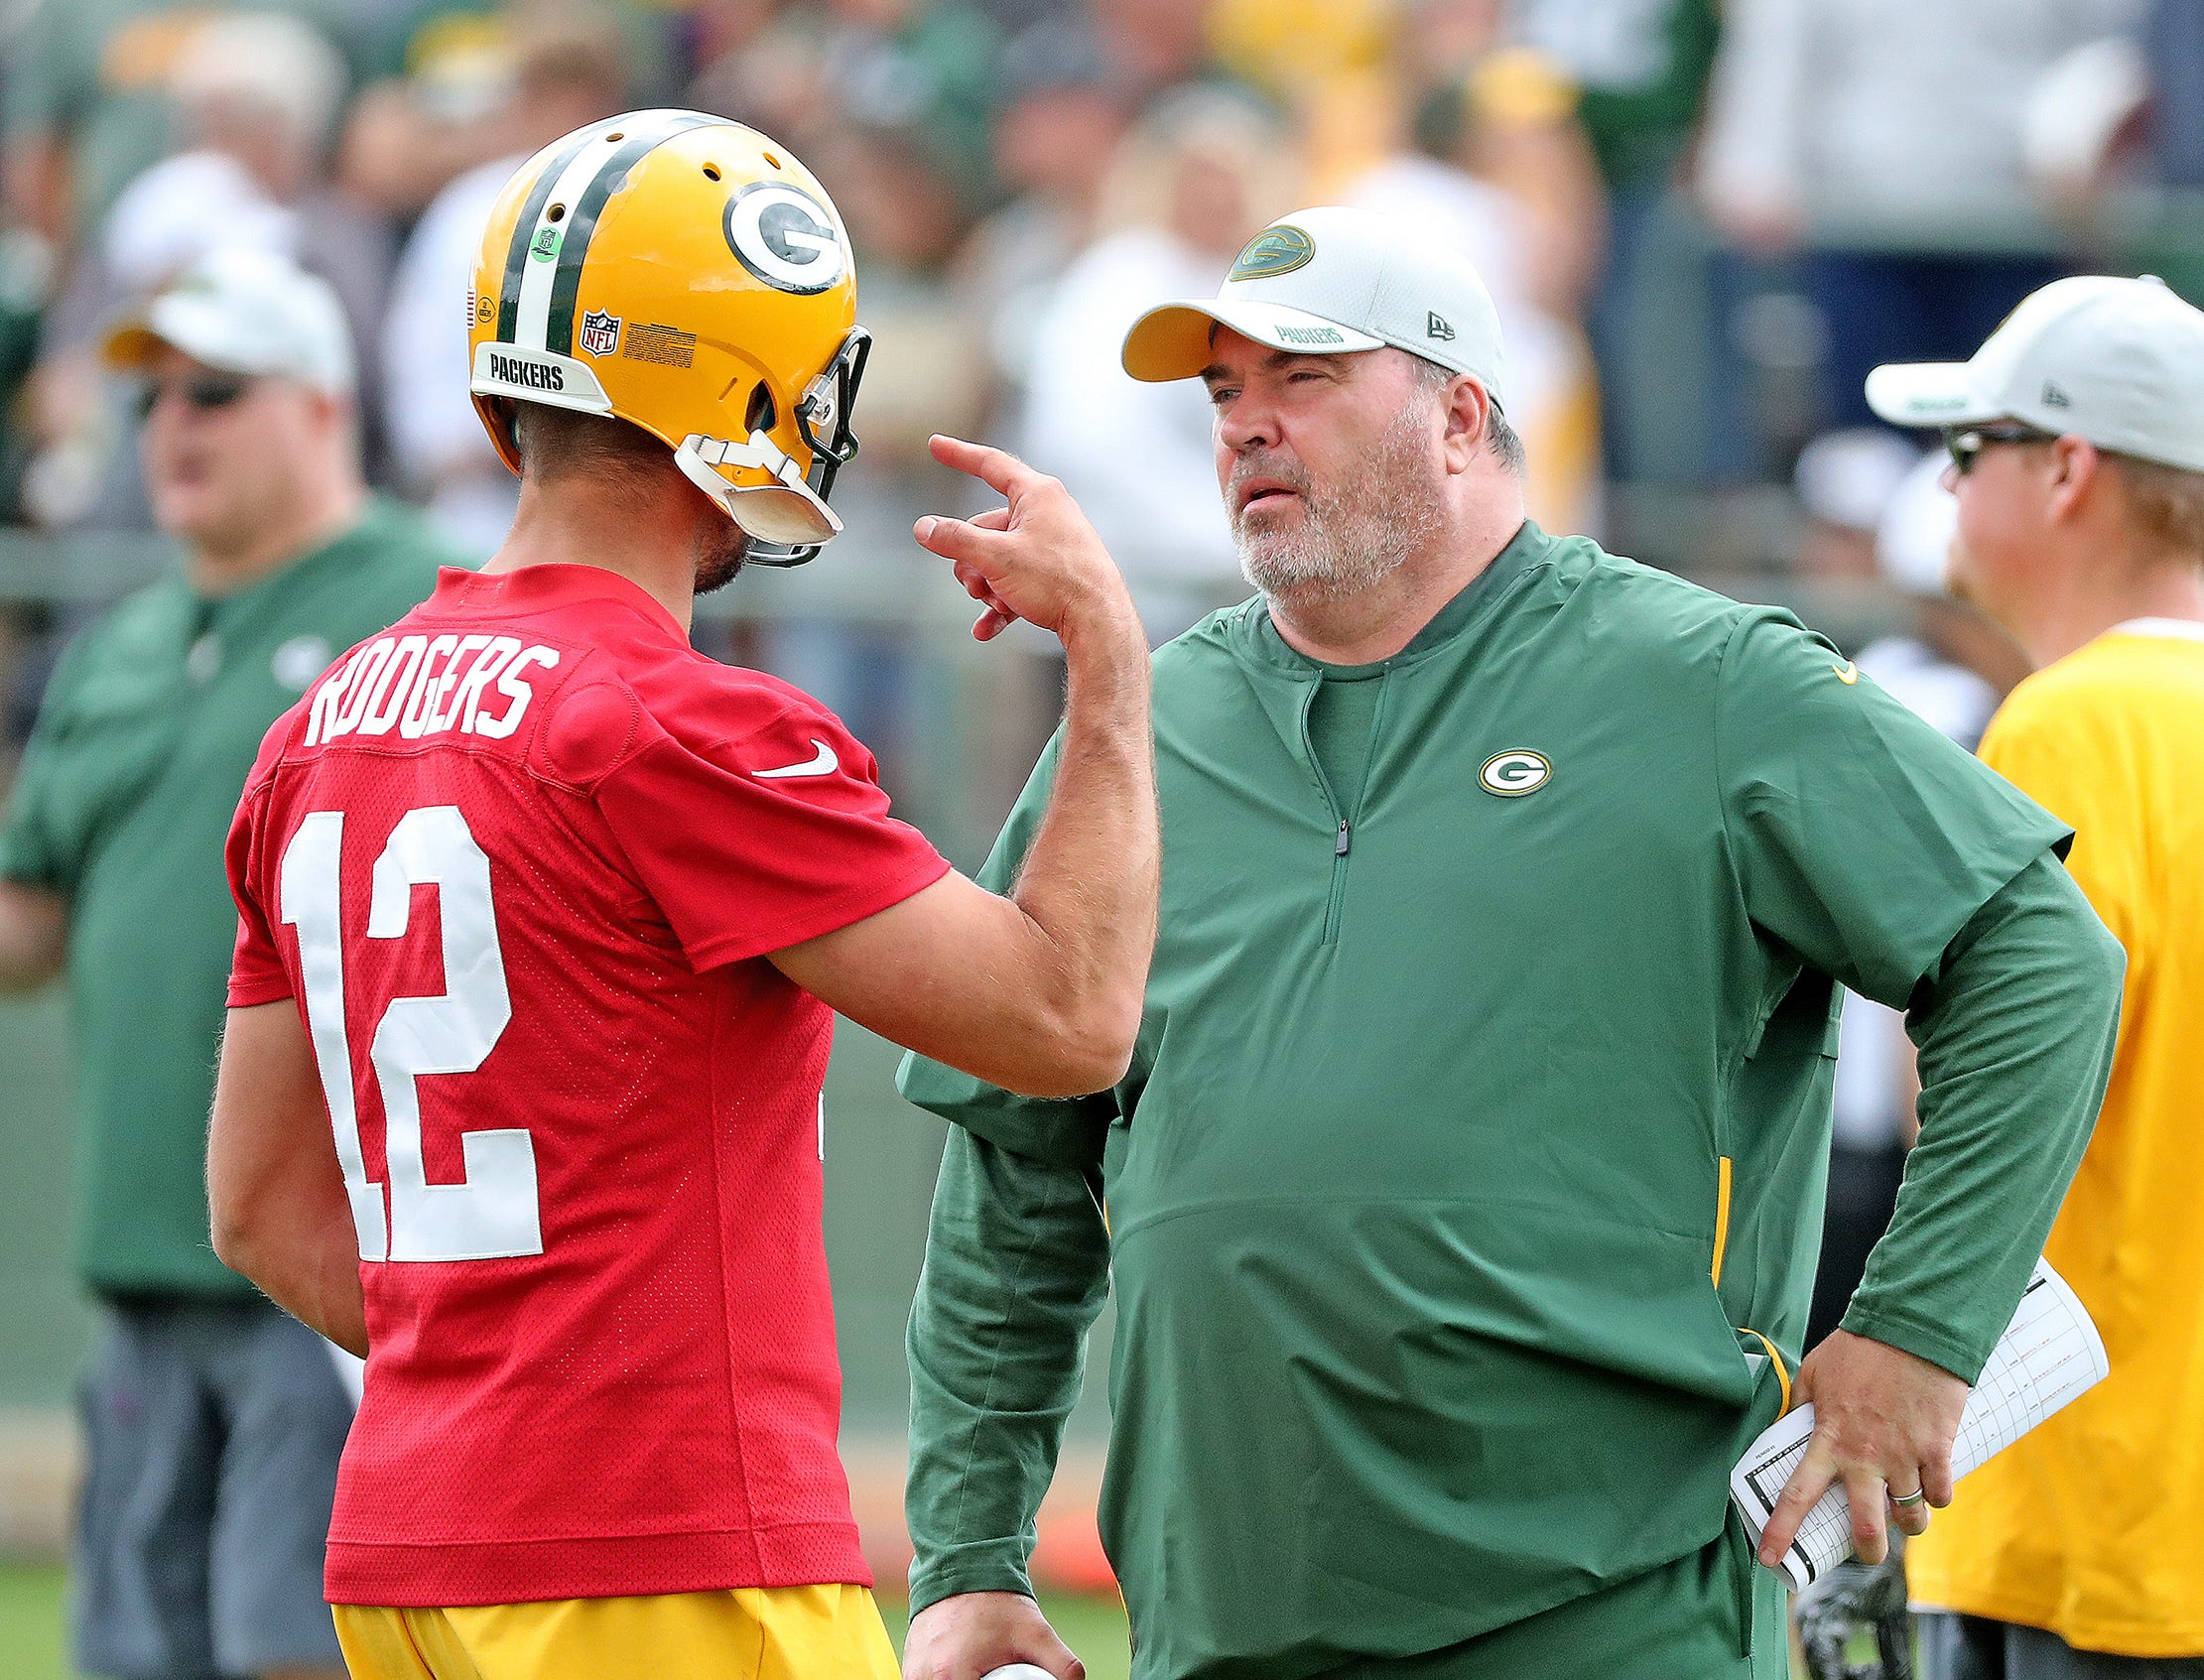 Green Bay Packers quarterback Aaron Rodgers (12) talks with head coach Mike McCarthy during Green Bay Packers Training Camp Friday, July 27, 2018 at Ray Nitschke Field in Ashwaubenon, Wis